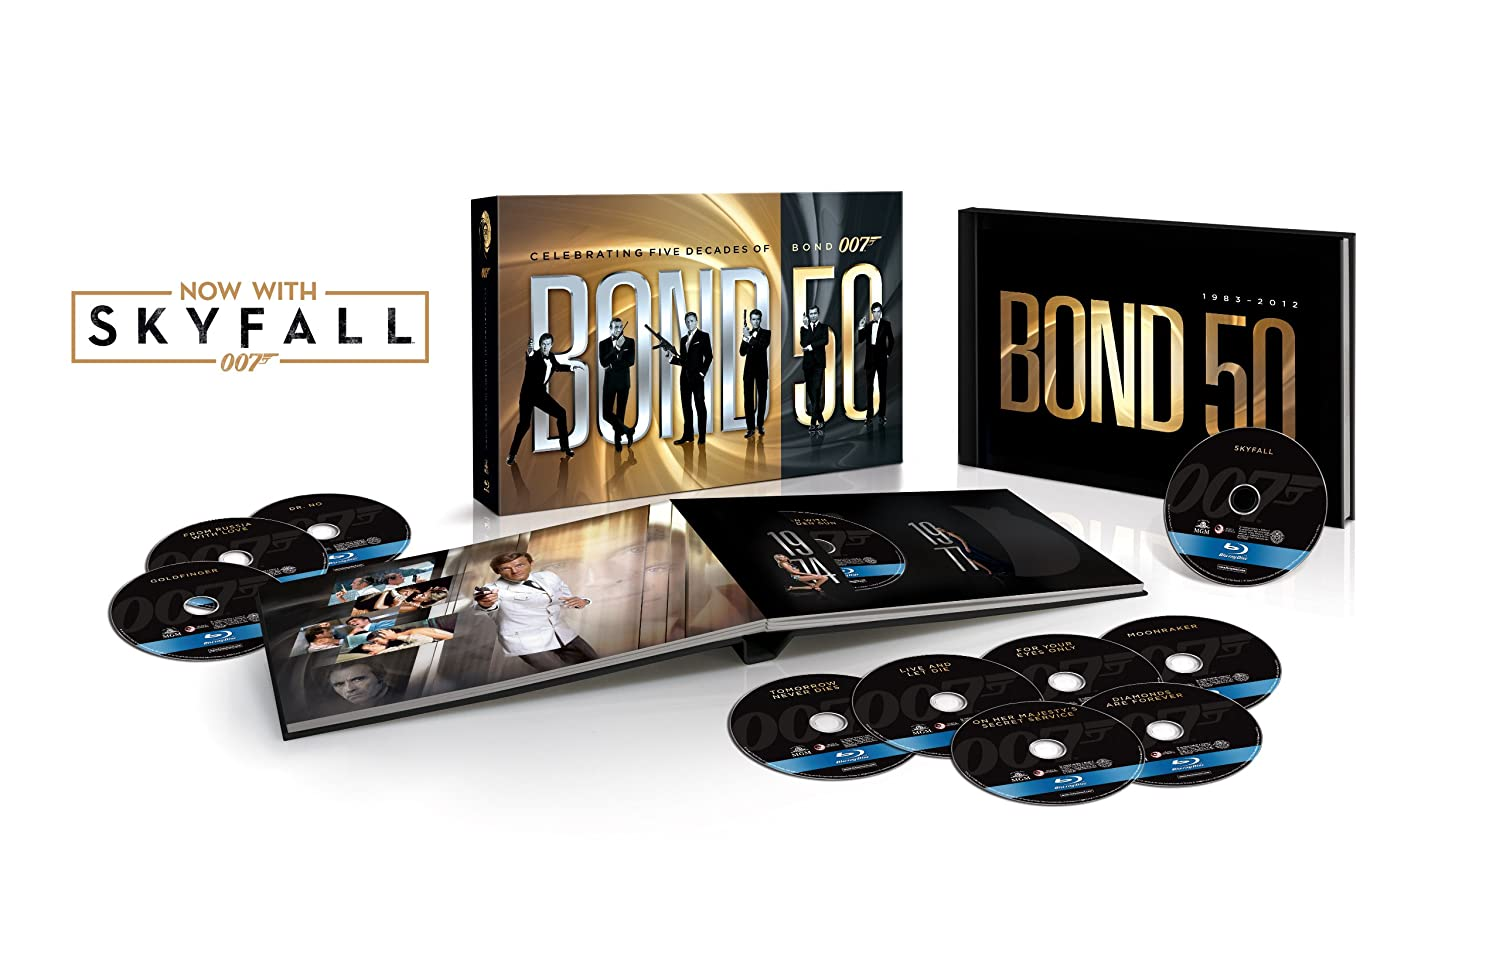 James Bond 50 complete box set - $39 shipped (All 23 films up to ...